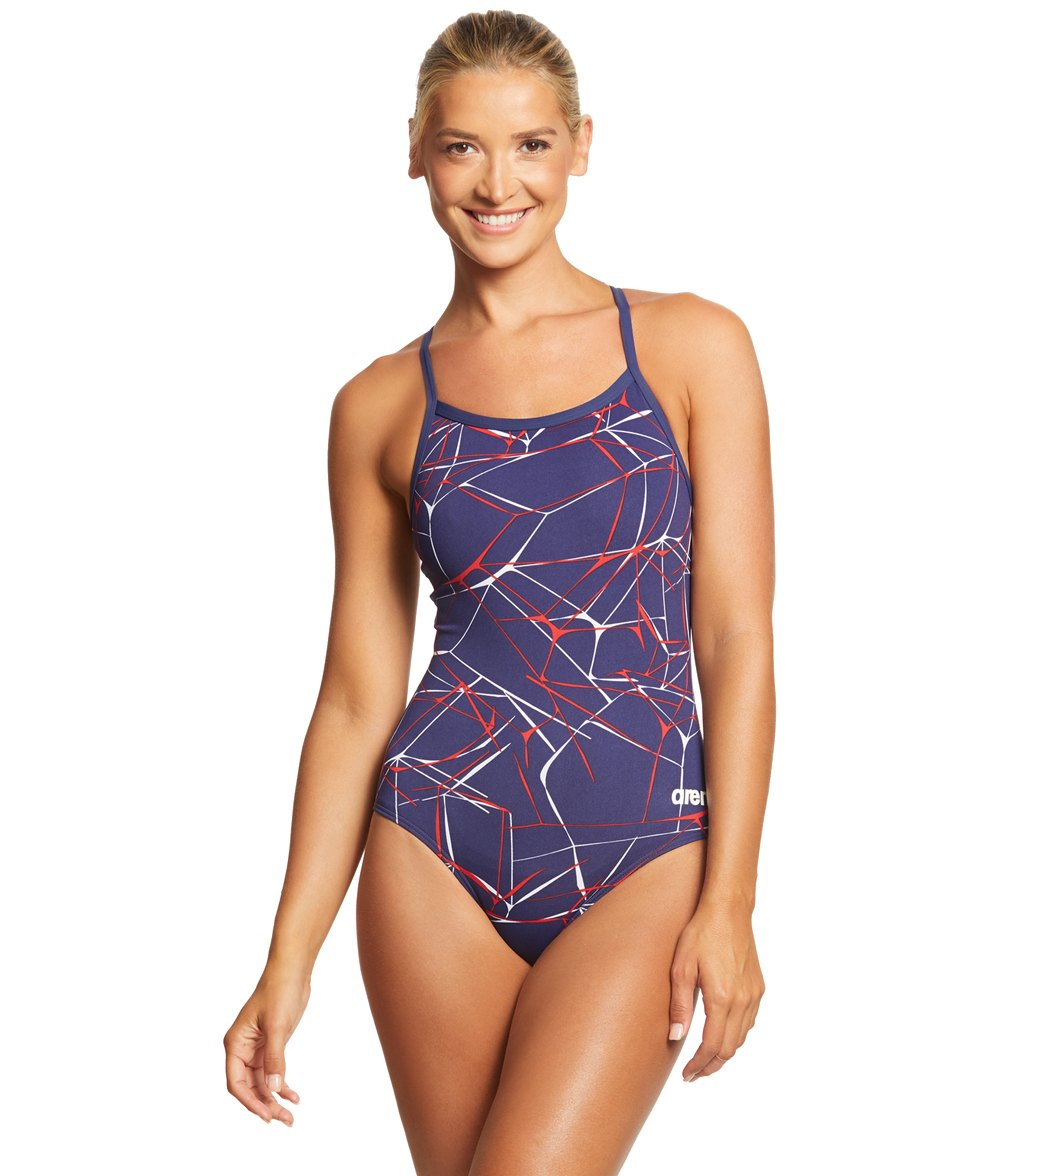 5e50c041816 Arena Women's Water MaxLife Sporty Thin Strap Racer Back One Piece Swimsuit  at SwimOutlet.com - Free Shipping